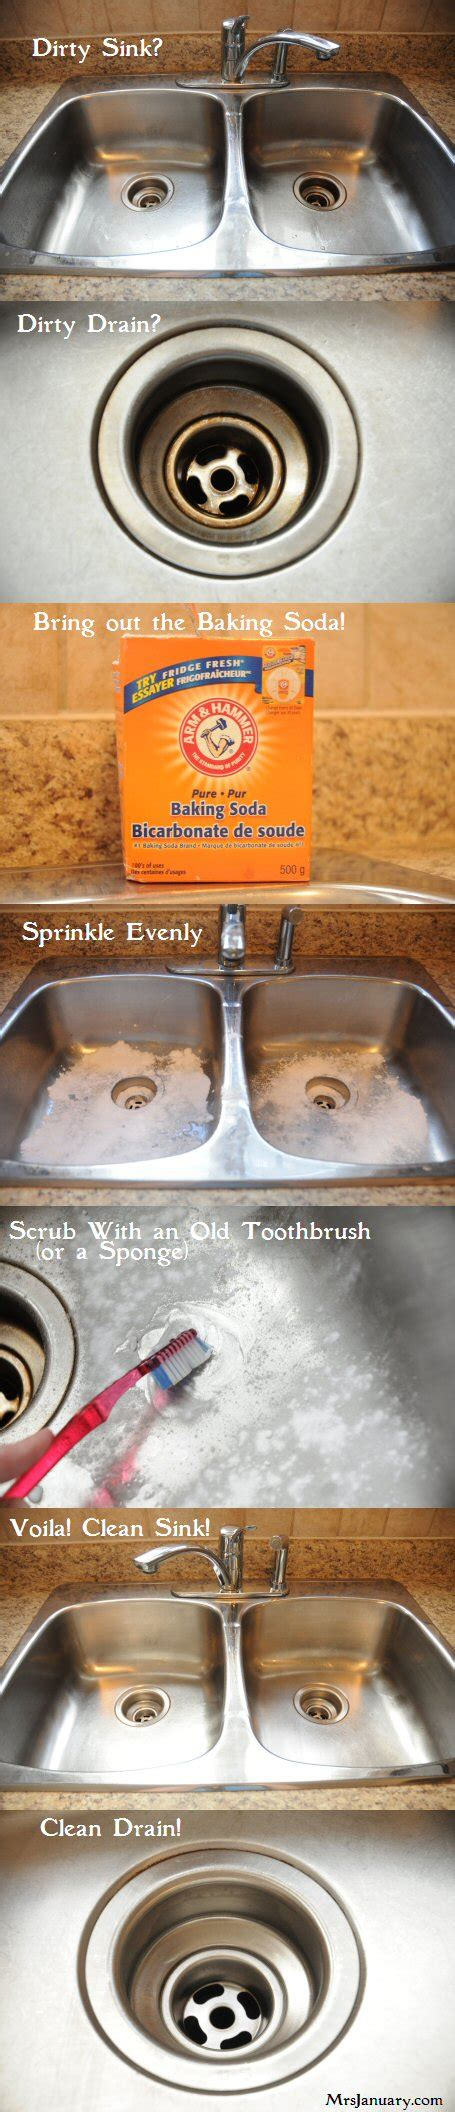 clean stainless steel kitchen sink how to clean stainless steel kitchen sink or drain diy